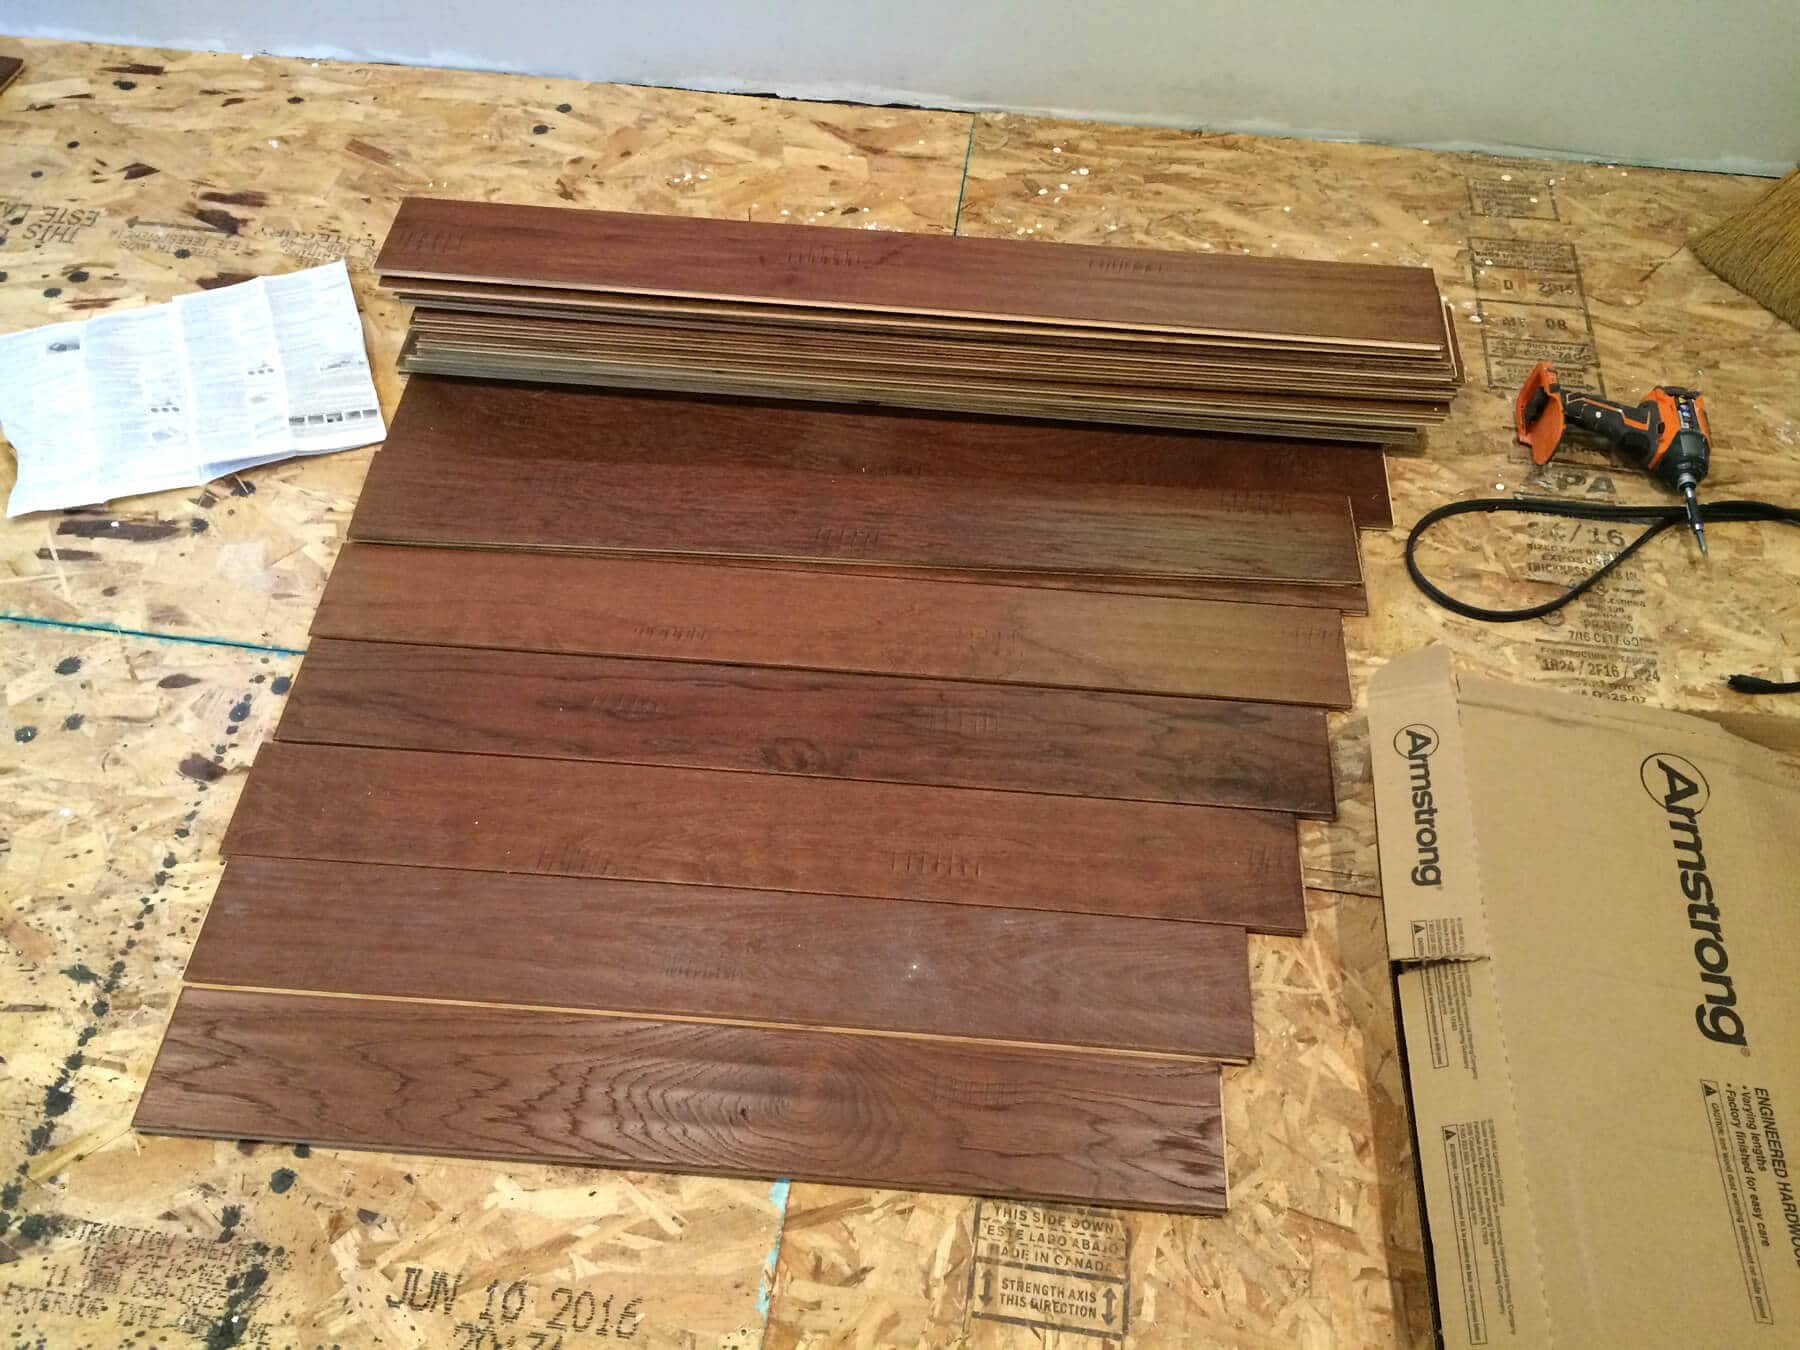 how to install a hardwood floor over plywood of the micro dwelling project part 5 flooring the daring gourmet throughout laying down the sub flooring was fine but honestly the thought of installing hardwood floors seemed extremely intimidating we were pretty nervous going in